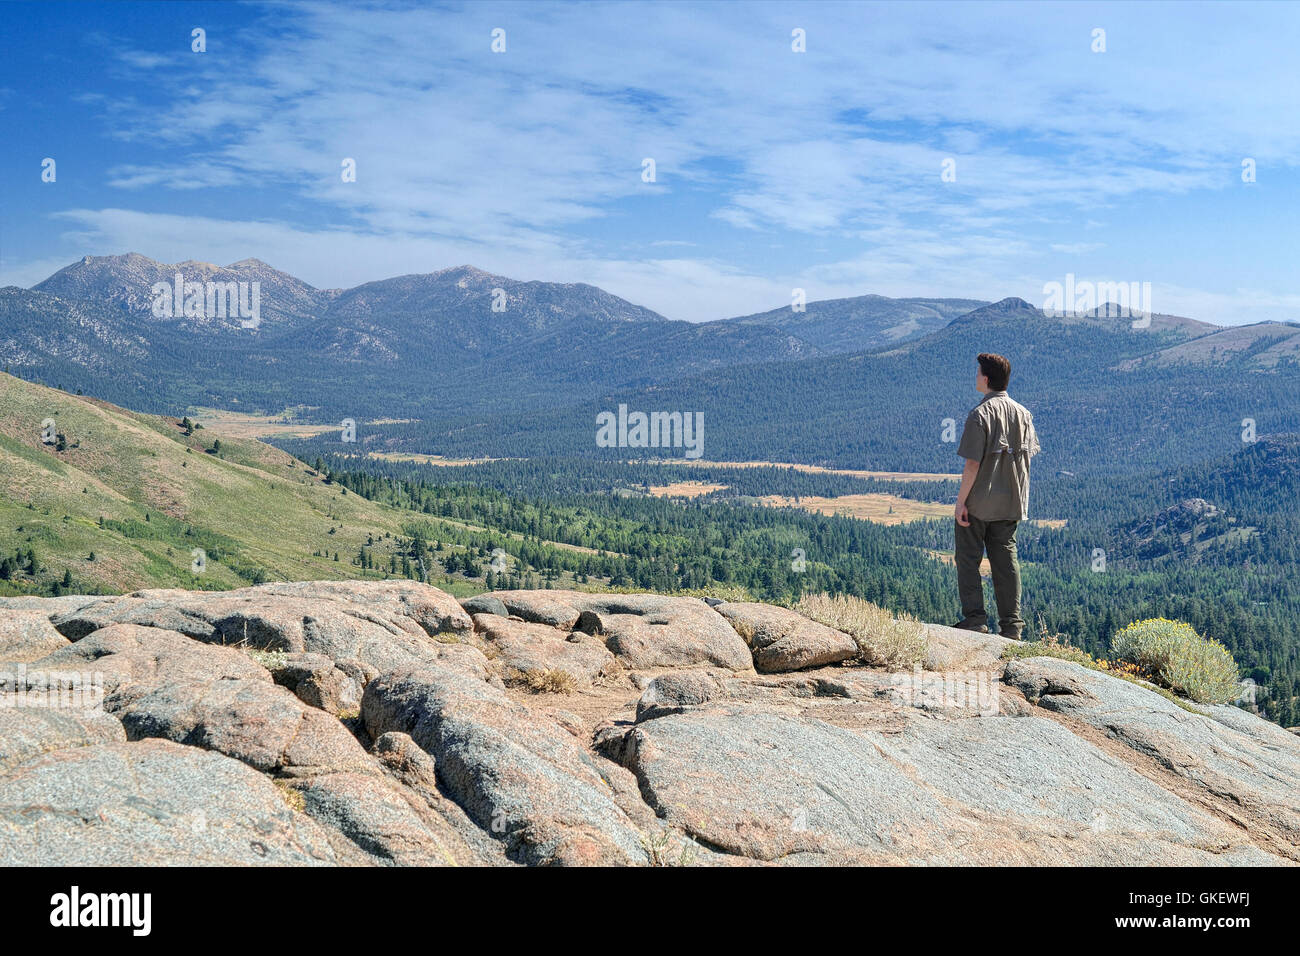 Young man looking at canyon from Frog Lake overview, near Carson Pass at Sierra Nevada, California - Stock Image